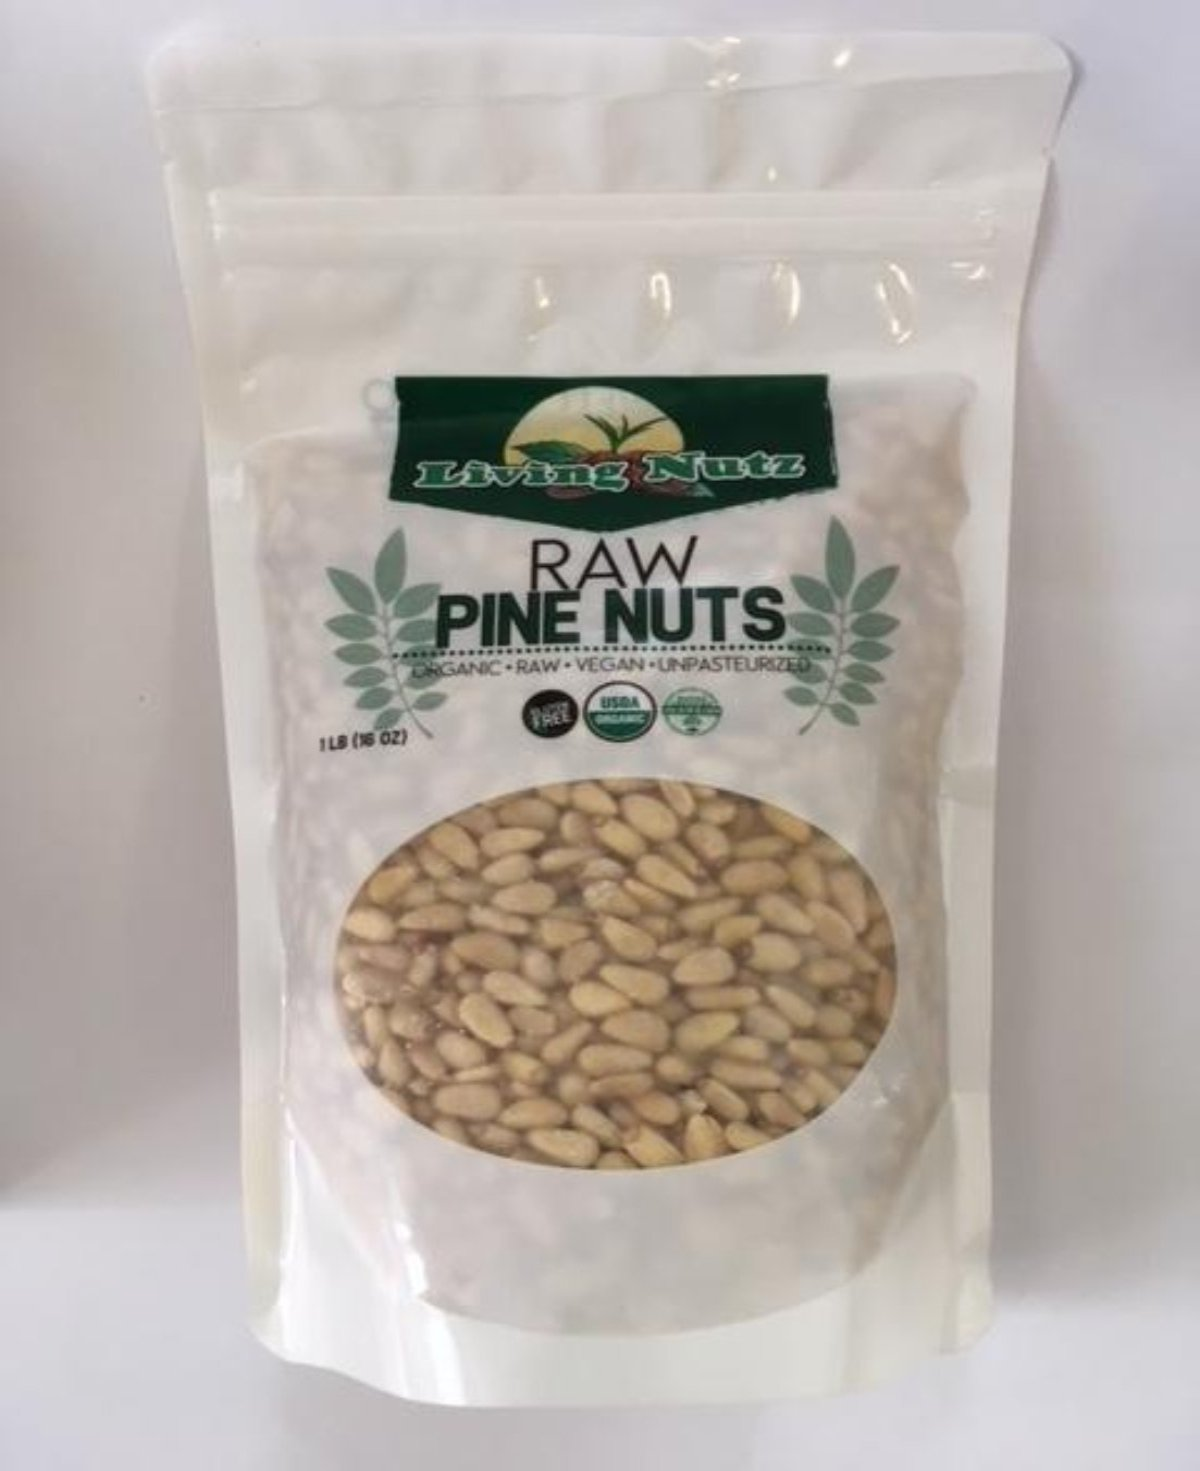 raw organic pine nuts for healthy benefits. Bulk organic pine nuts